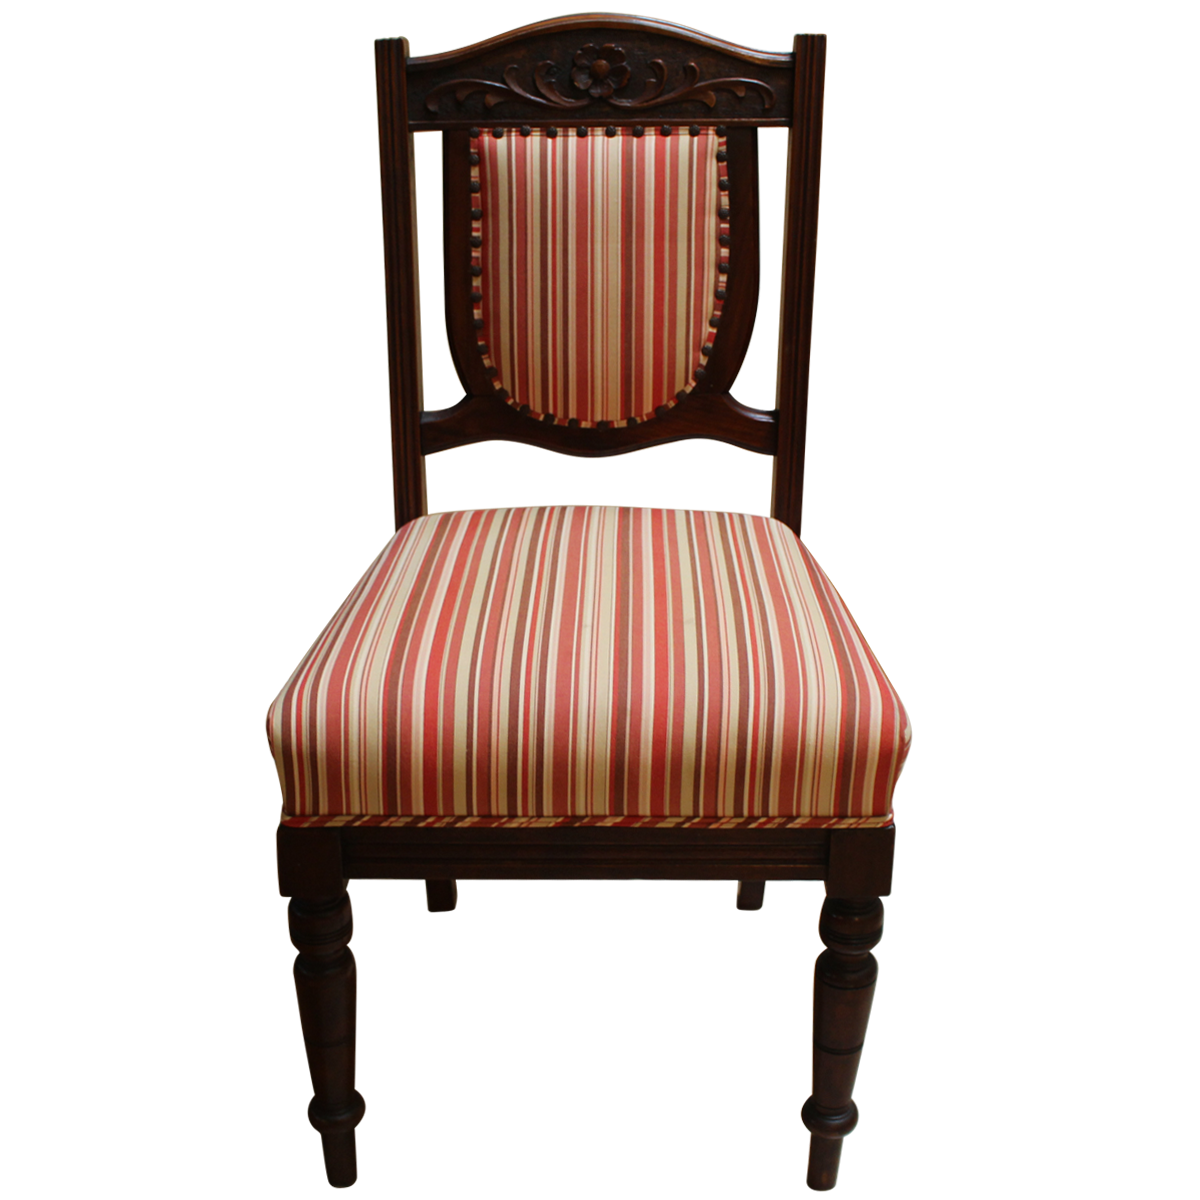 Wooden chair front view - Furniture Seating Vintage Wooden Striped Chairs Image 41446